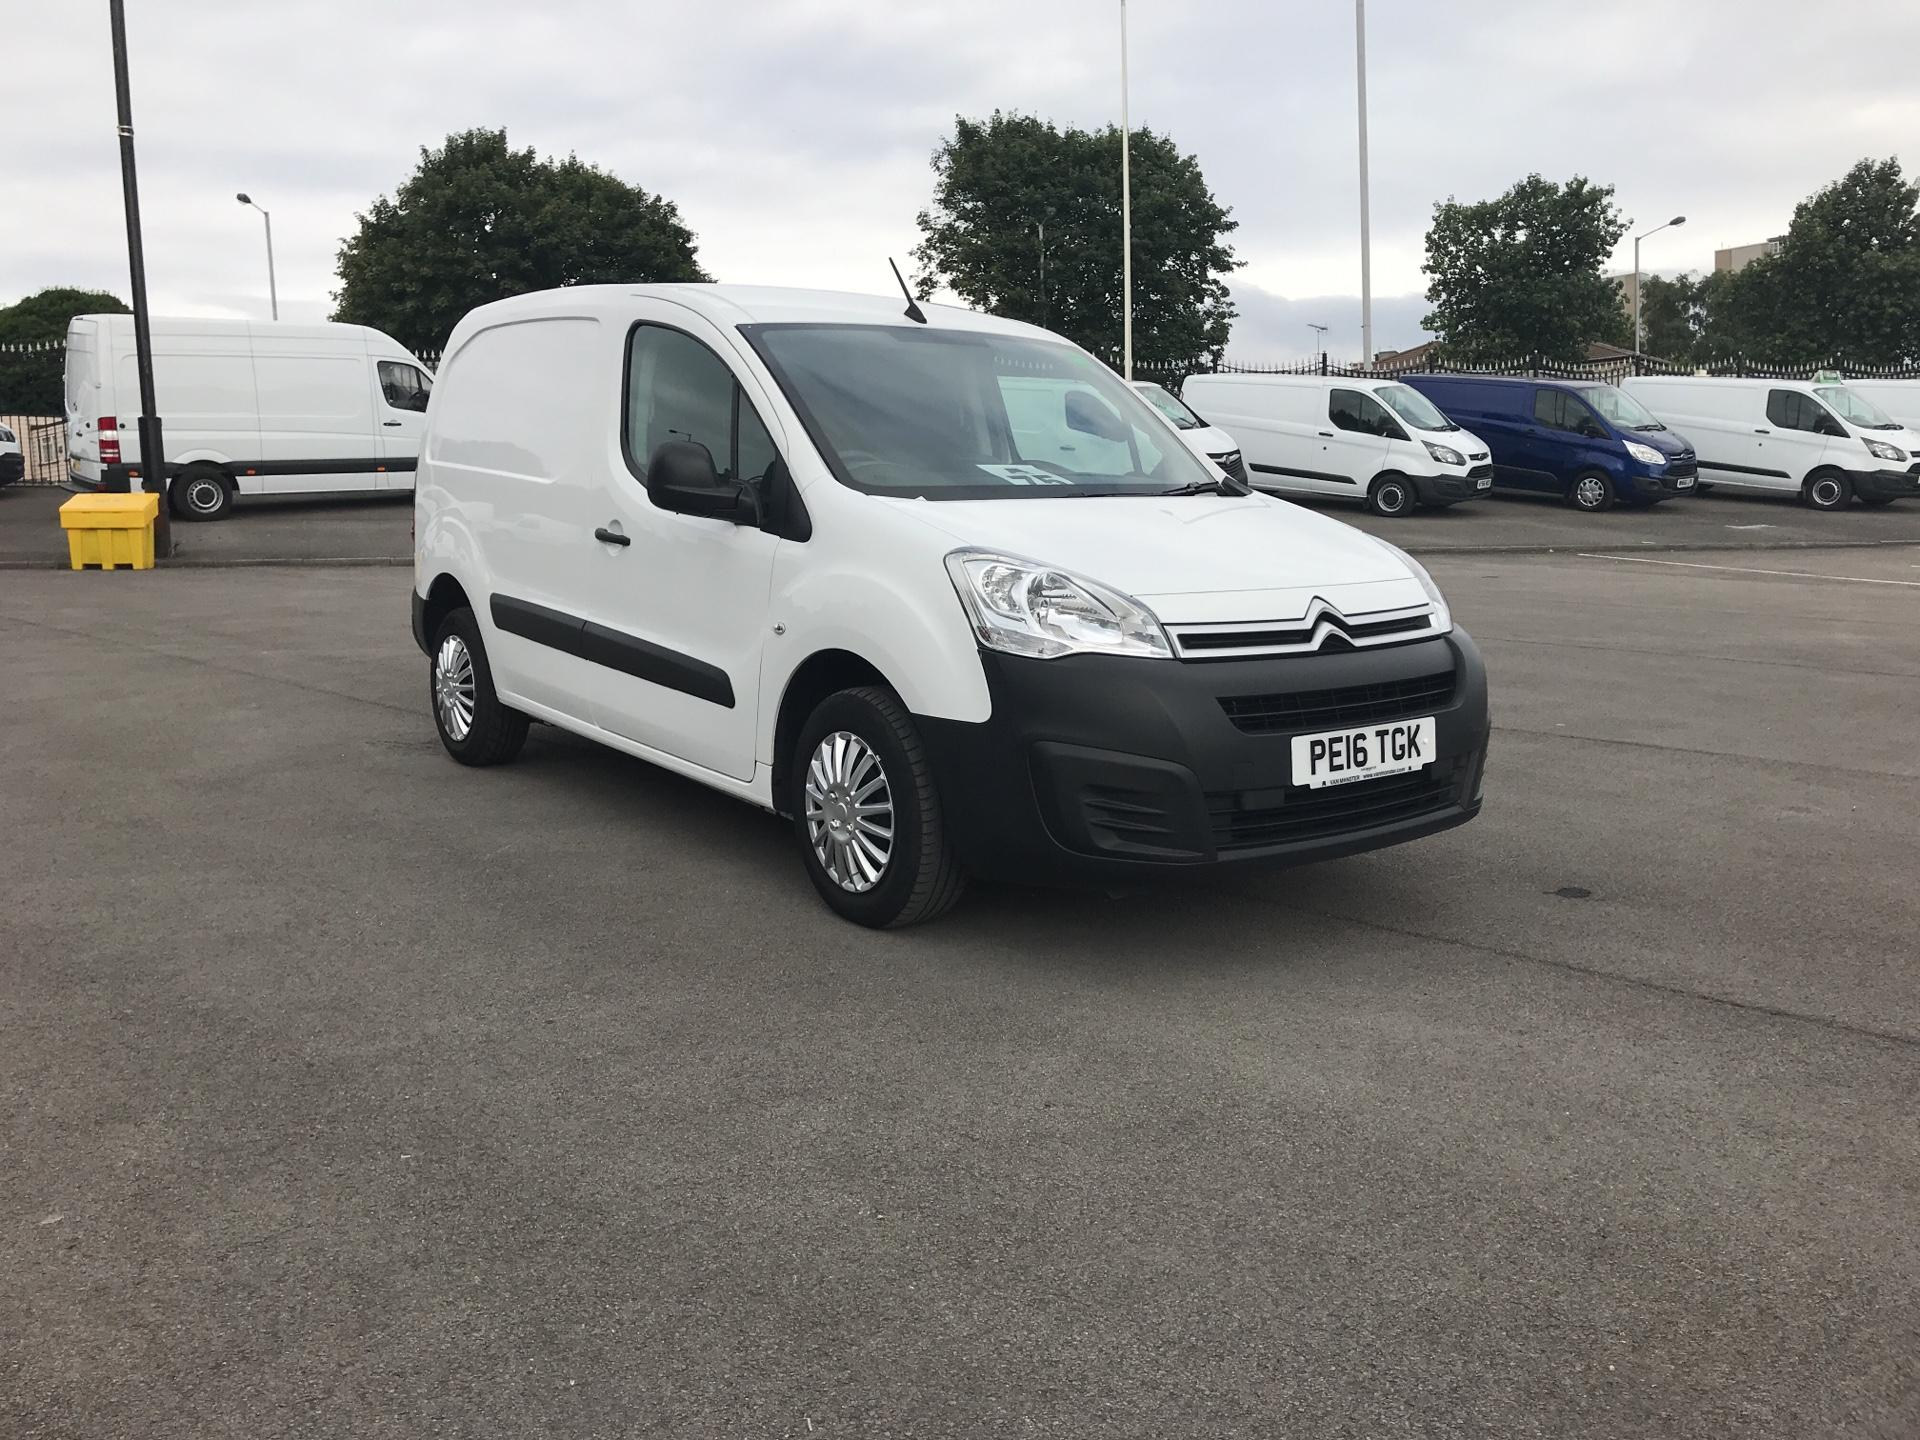 2016 Citroen Berlingo 1.6 Hdi 850Kg Enterprise 90Ps EURO 6 (PE16TGK)